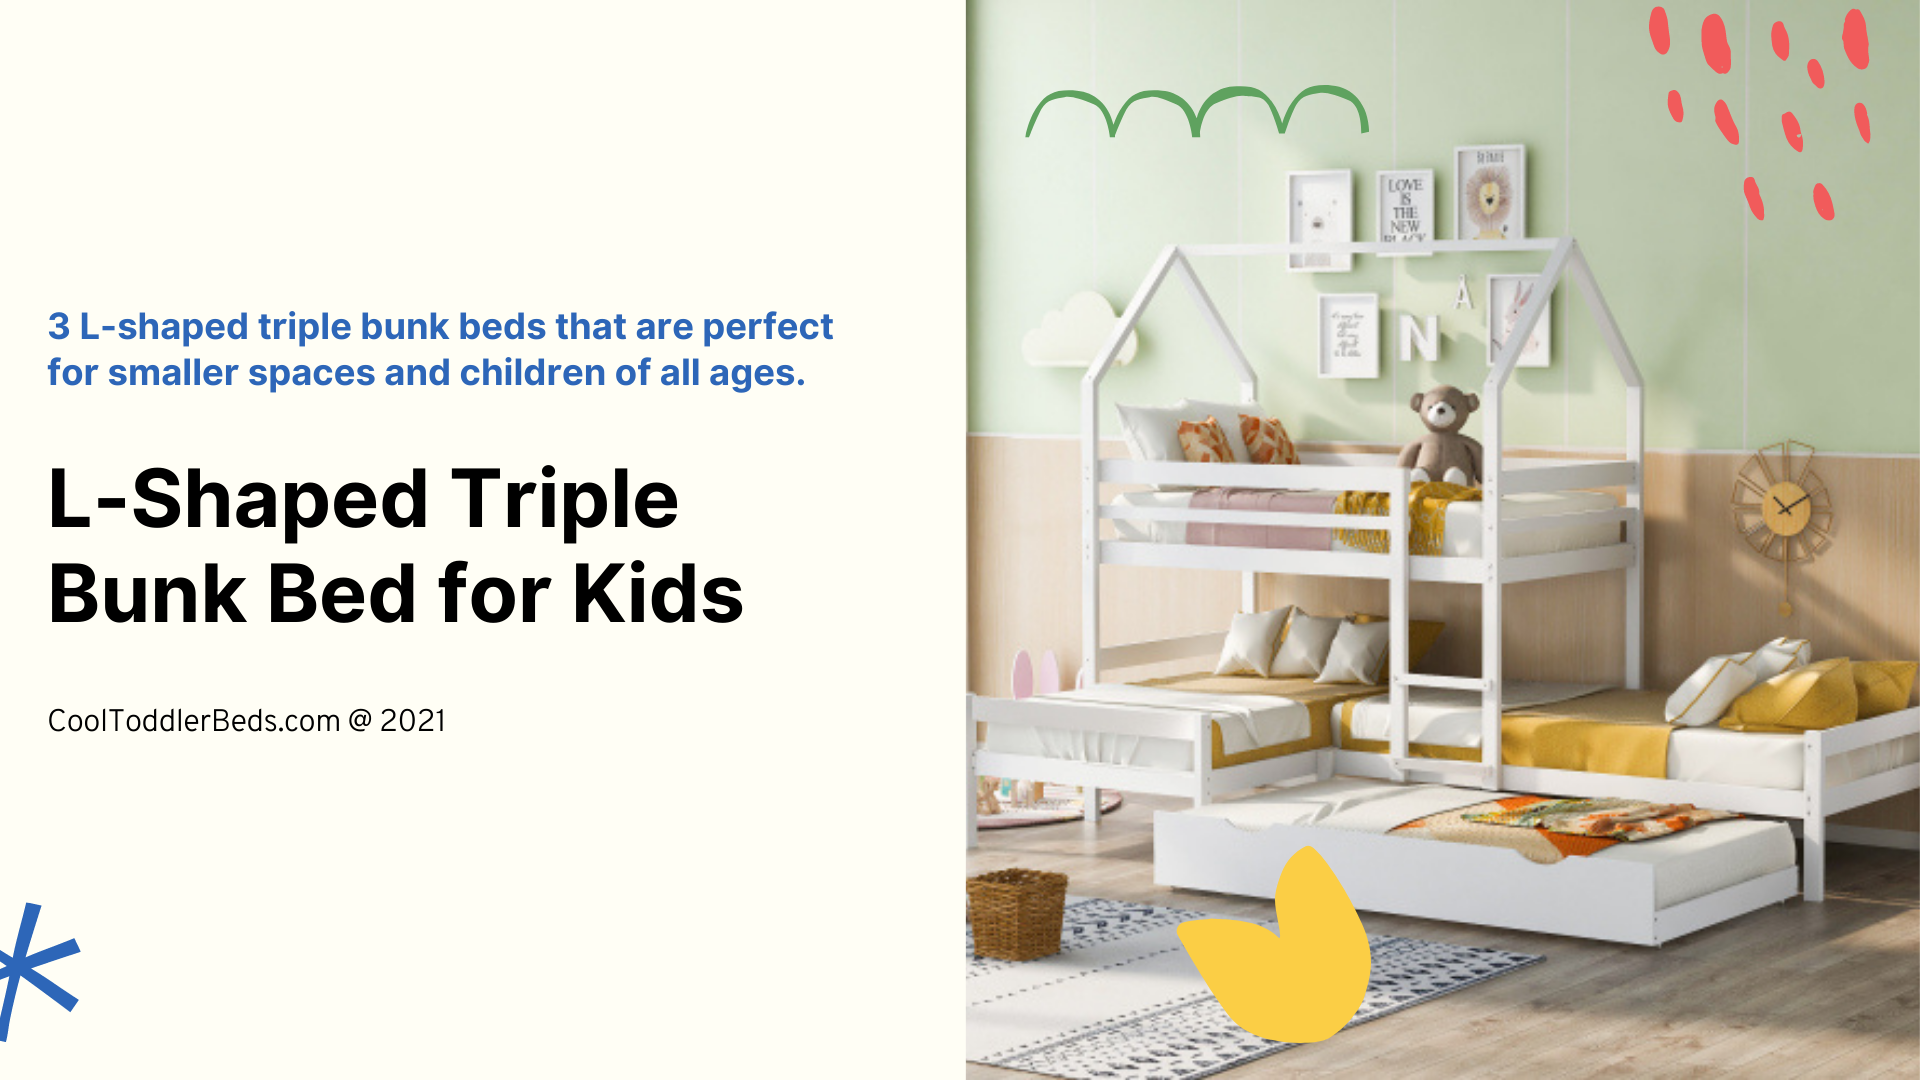 L-shaped triple bunk bed for kids